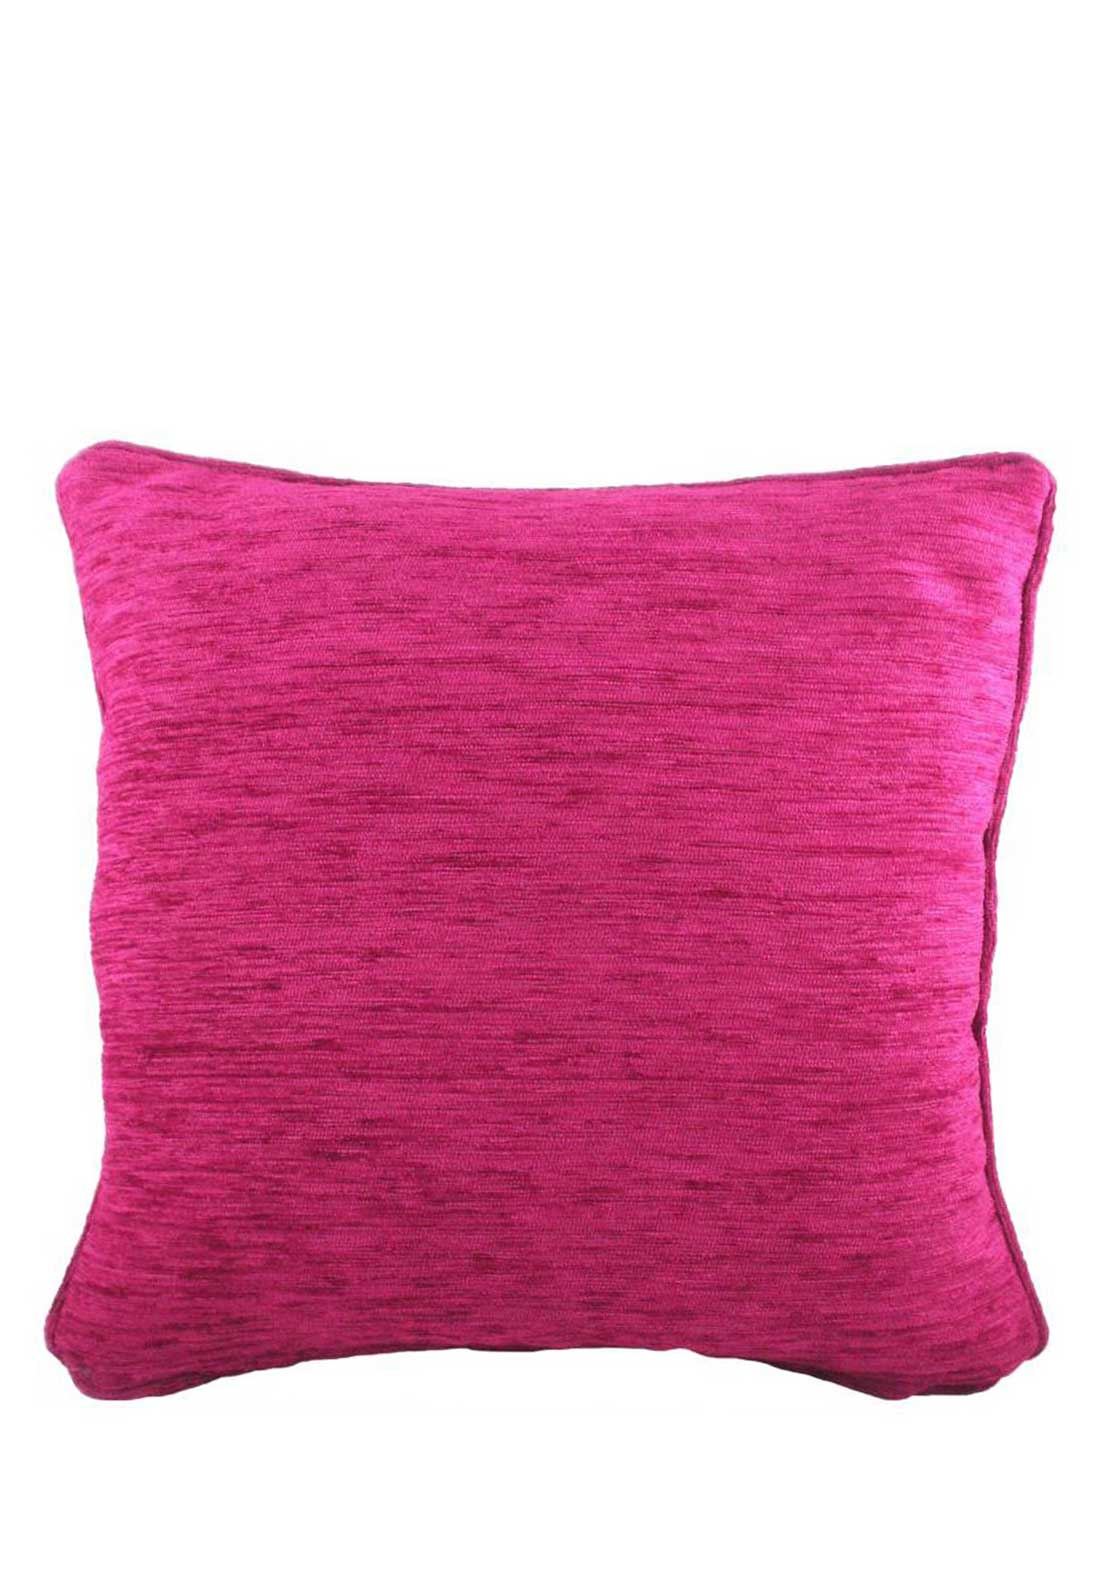 Savannah Chenille Cushion, 43 x 43cm, Cranberry